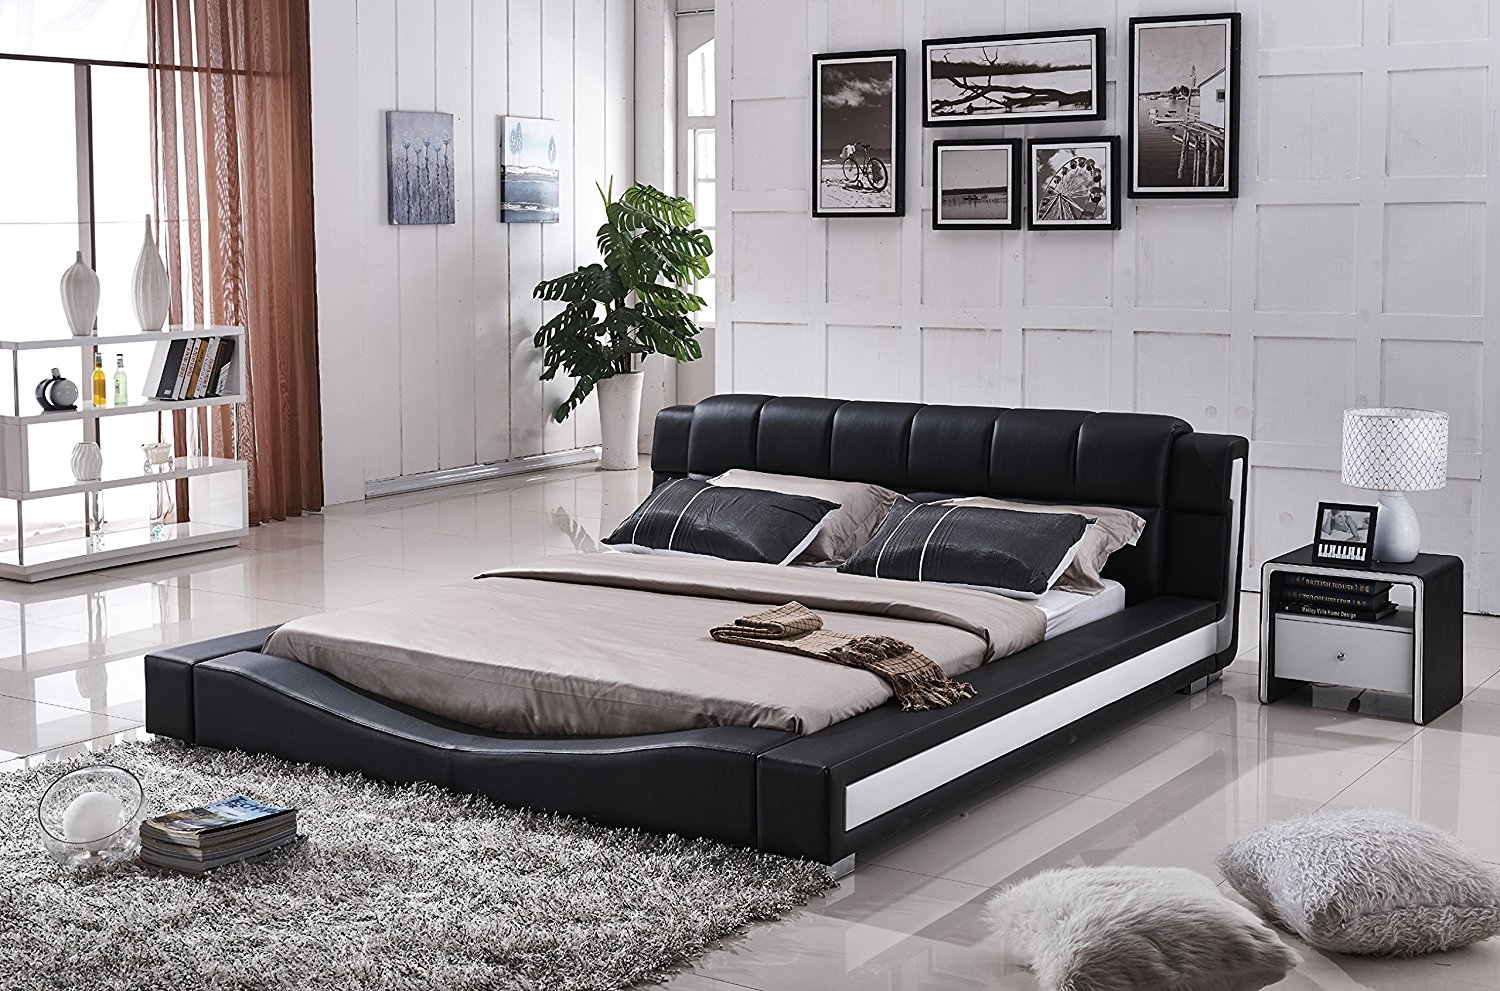 Container Furniture Direct Liam Collection Contemporary 2 Tone Faux Leather Upholstered Platform Bed with Padded Headboard, Black/White